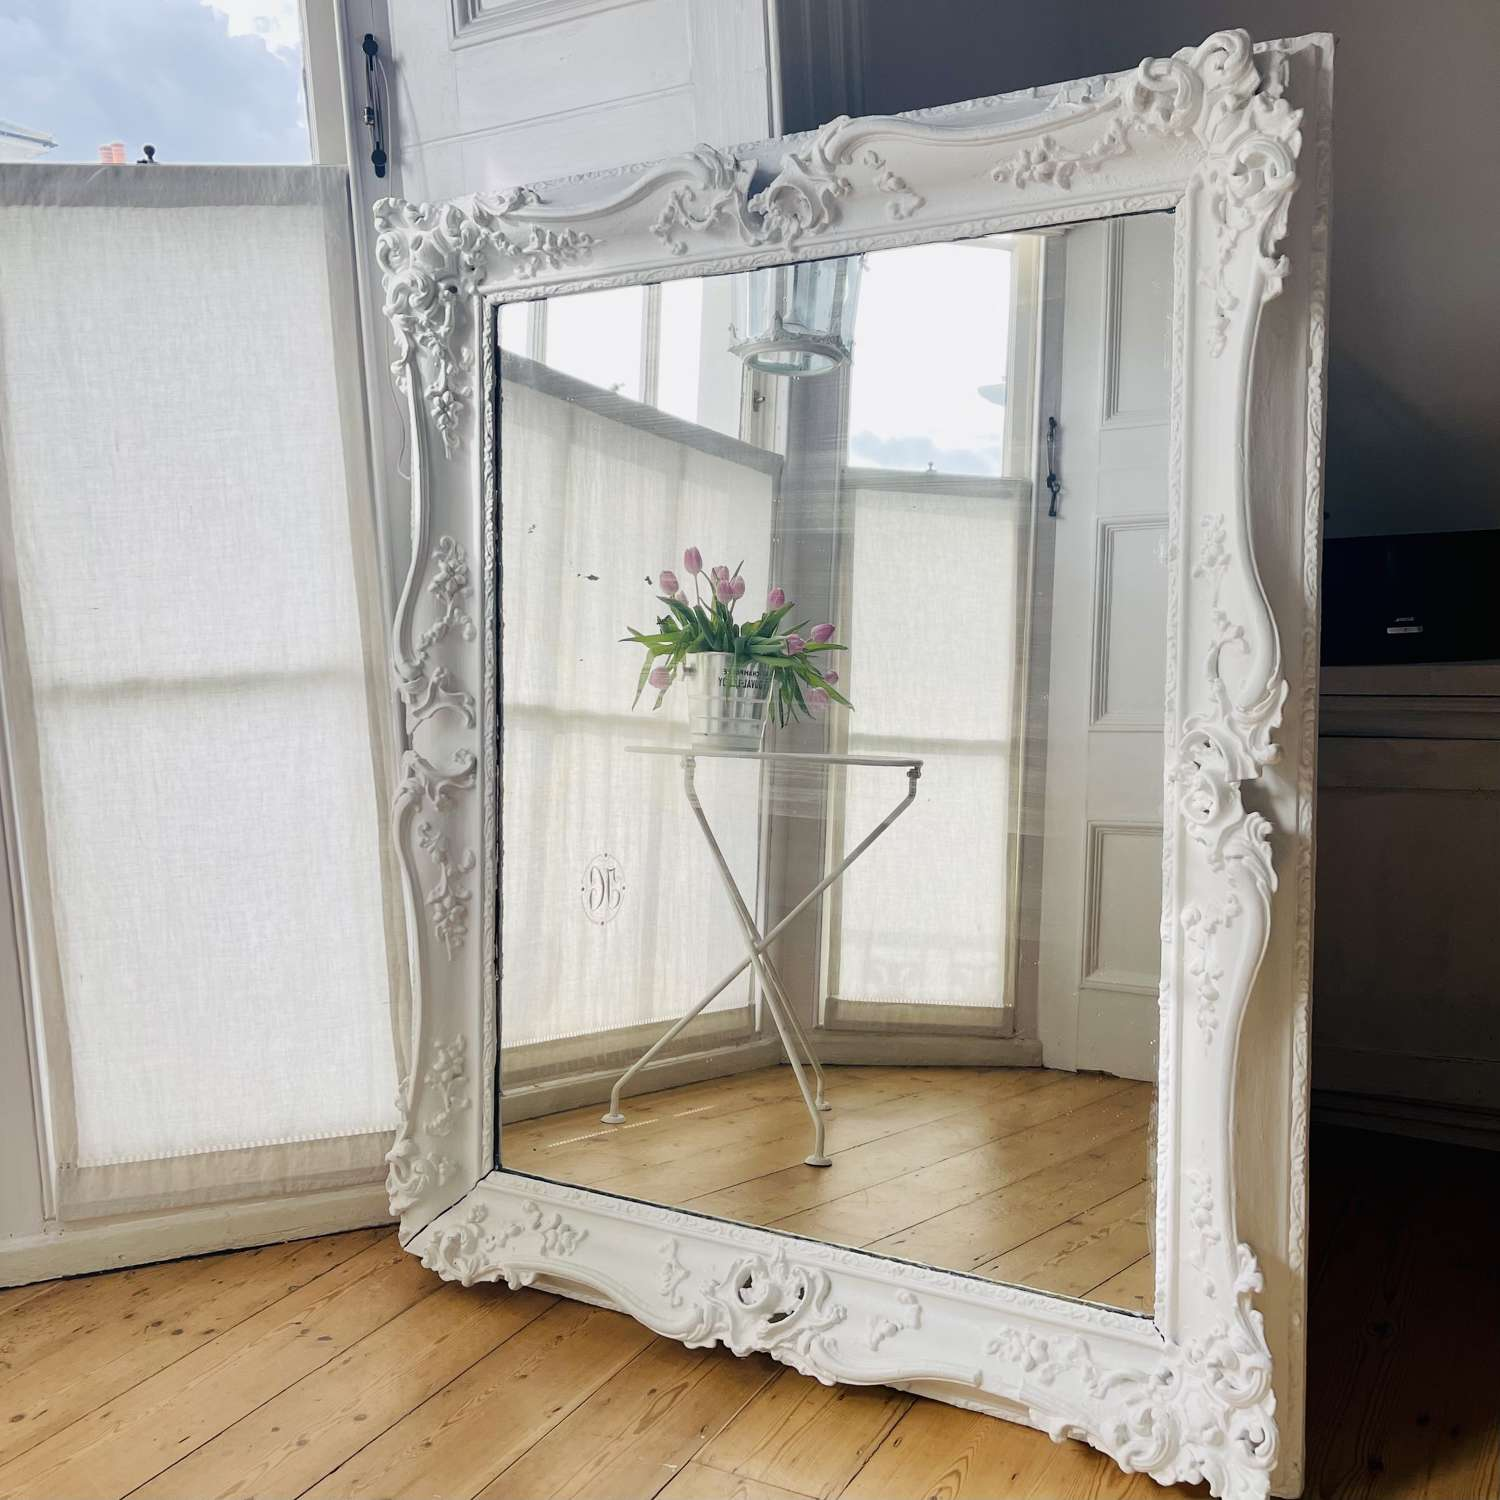 Large antique French Rococo mirror